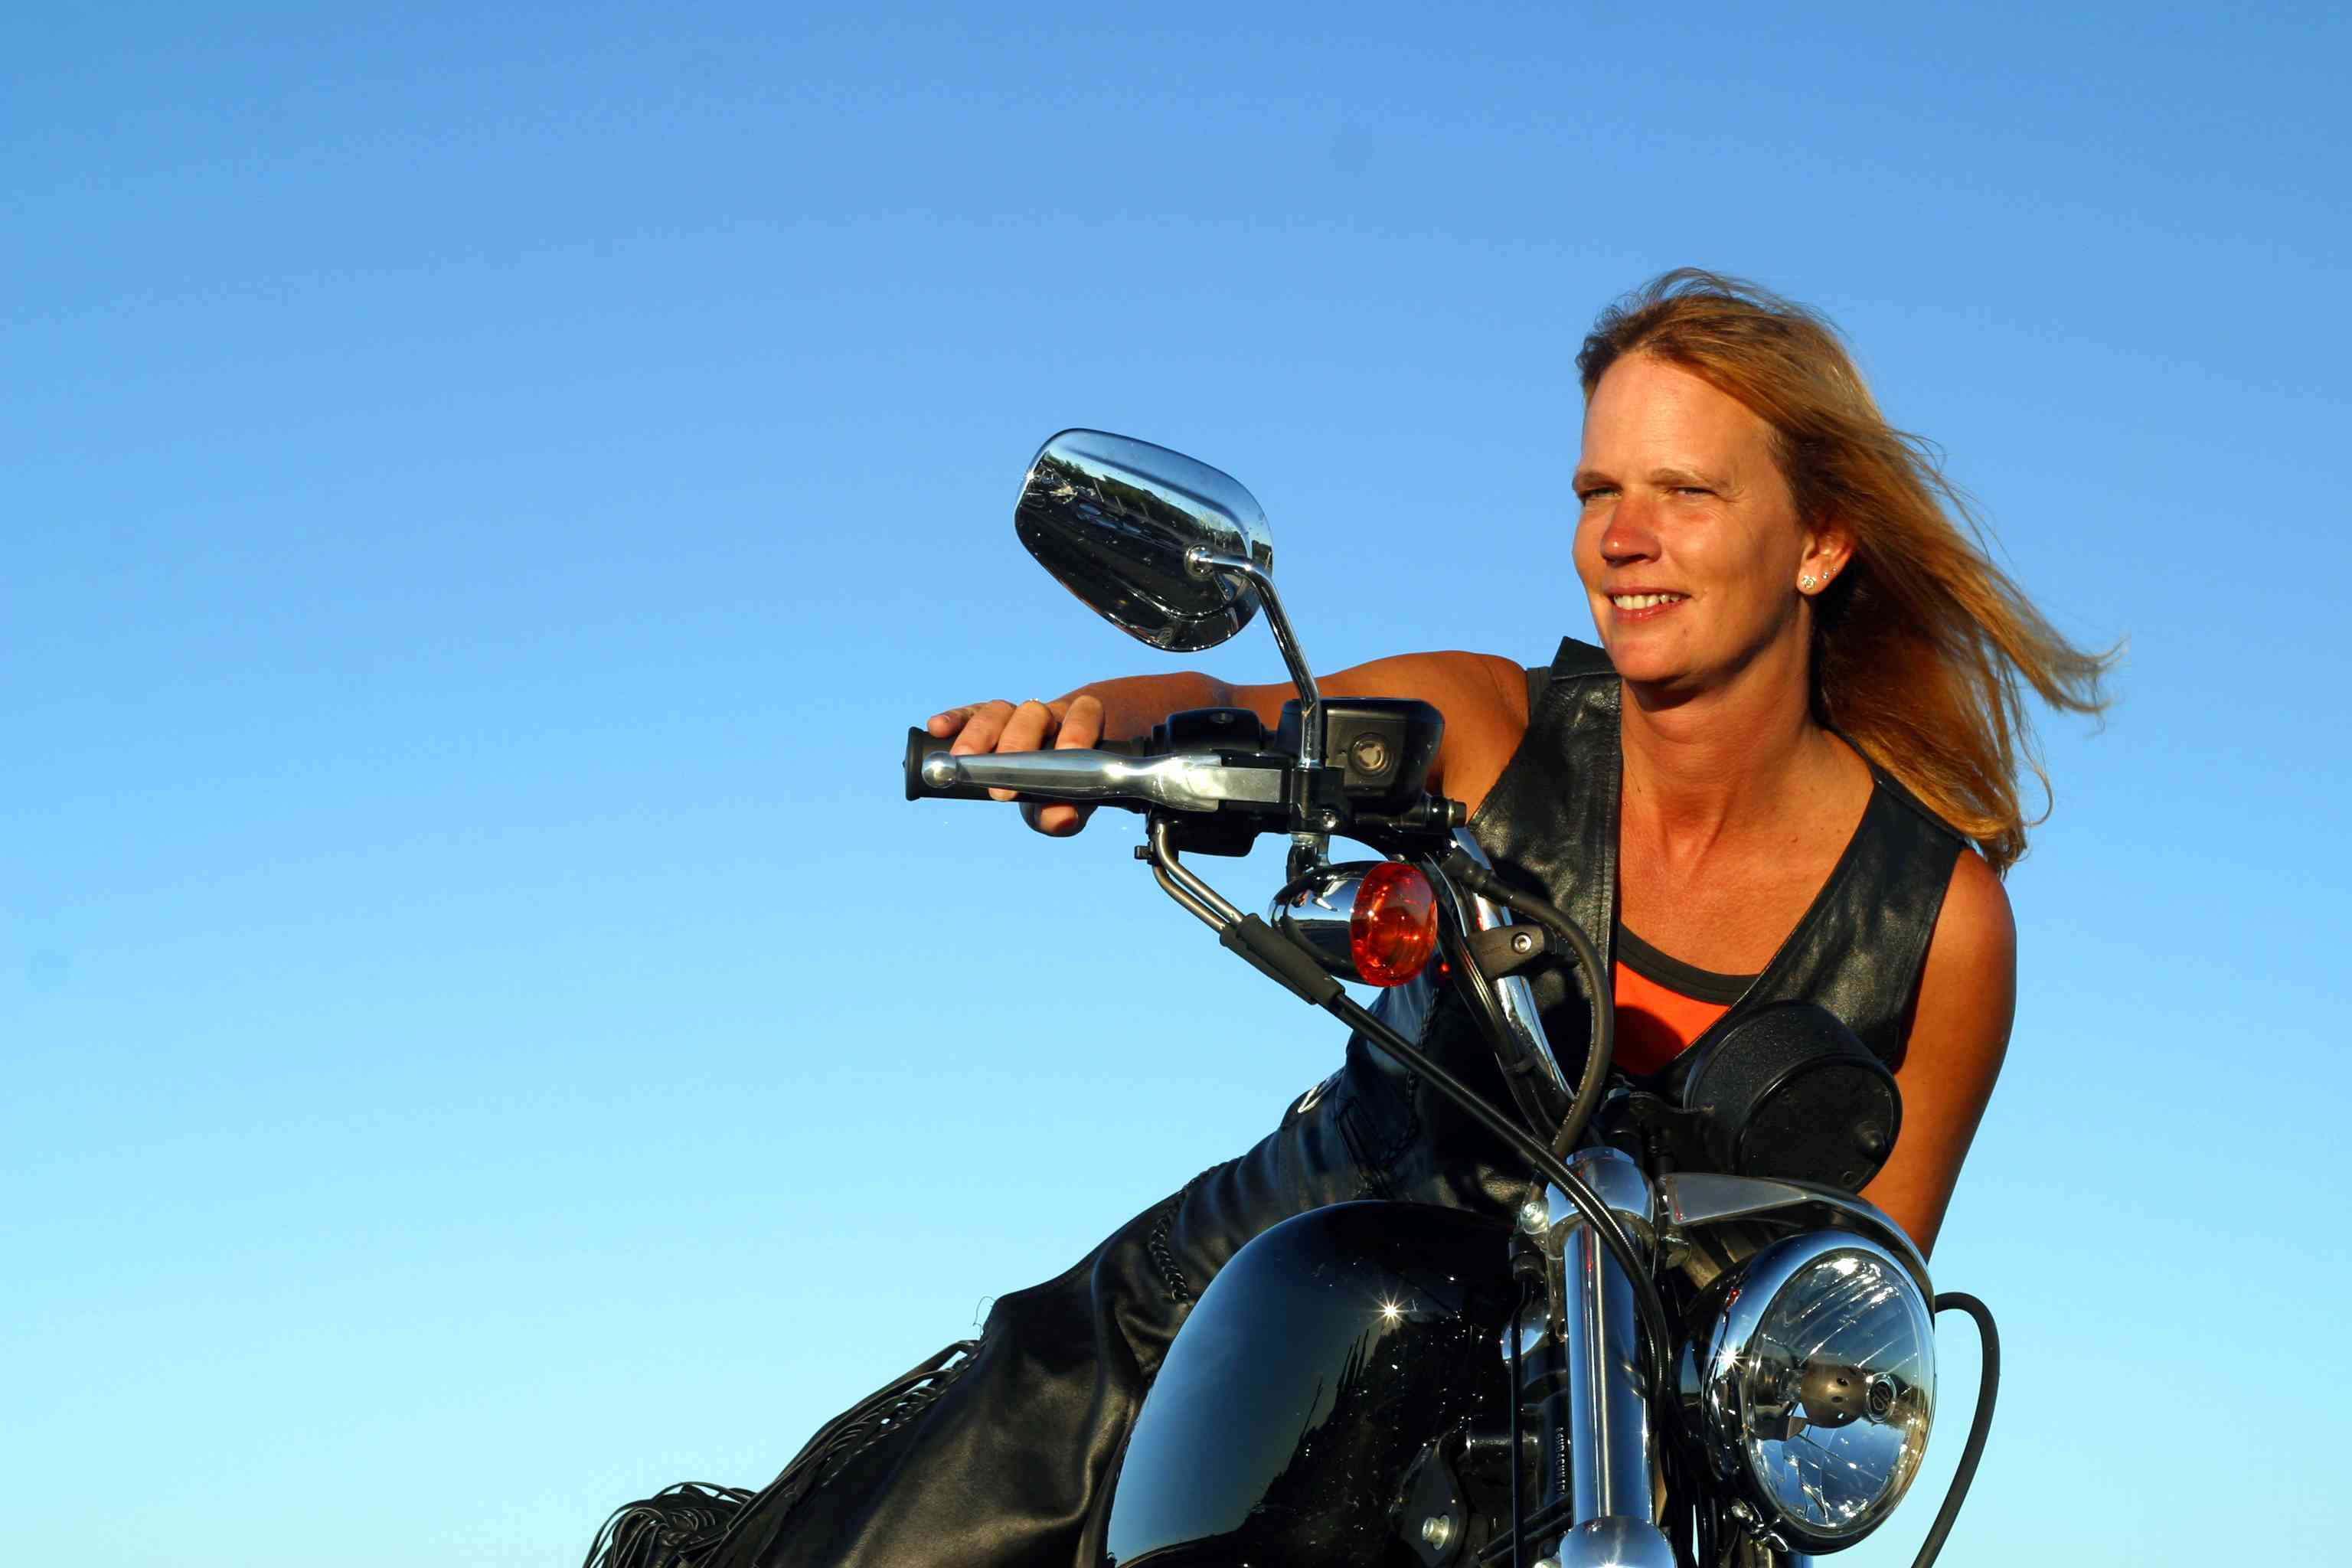 Woman on motorcycle with clear skies